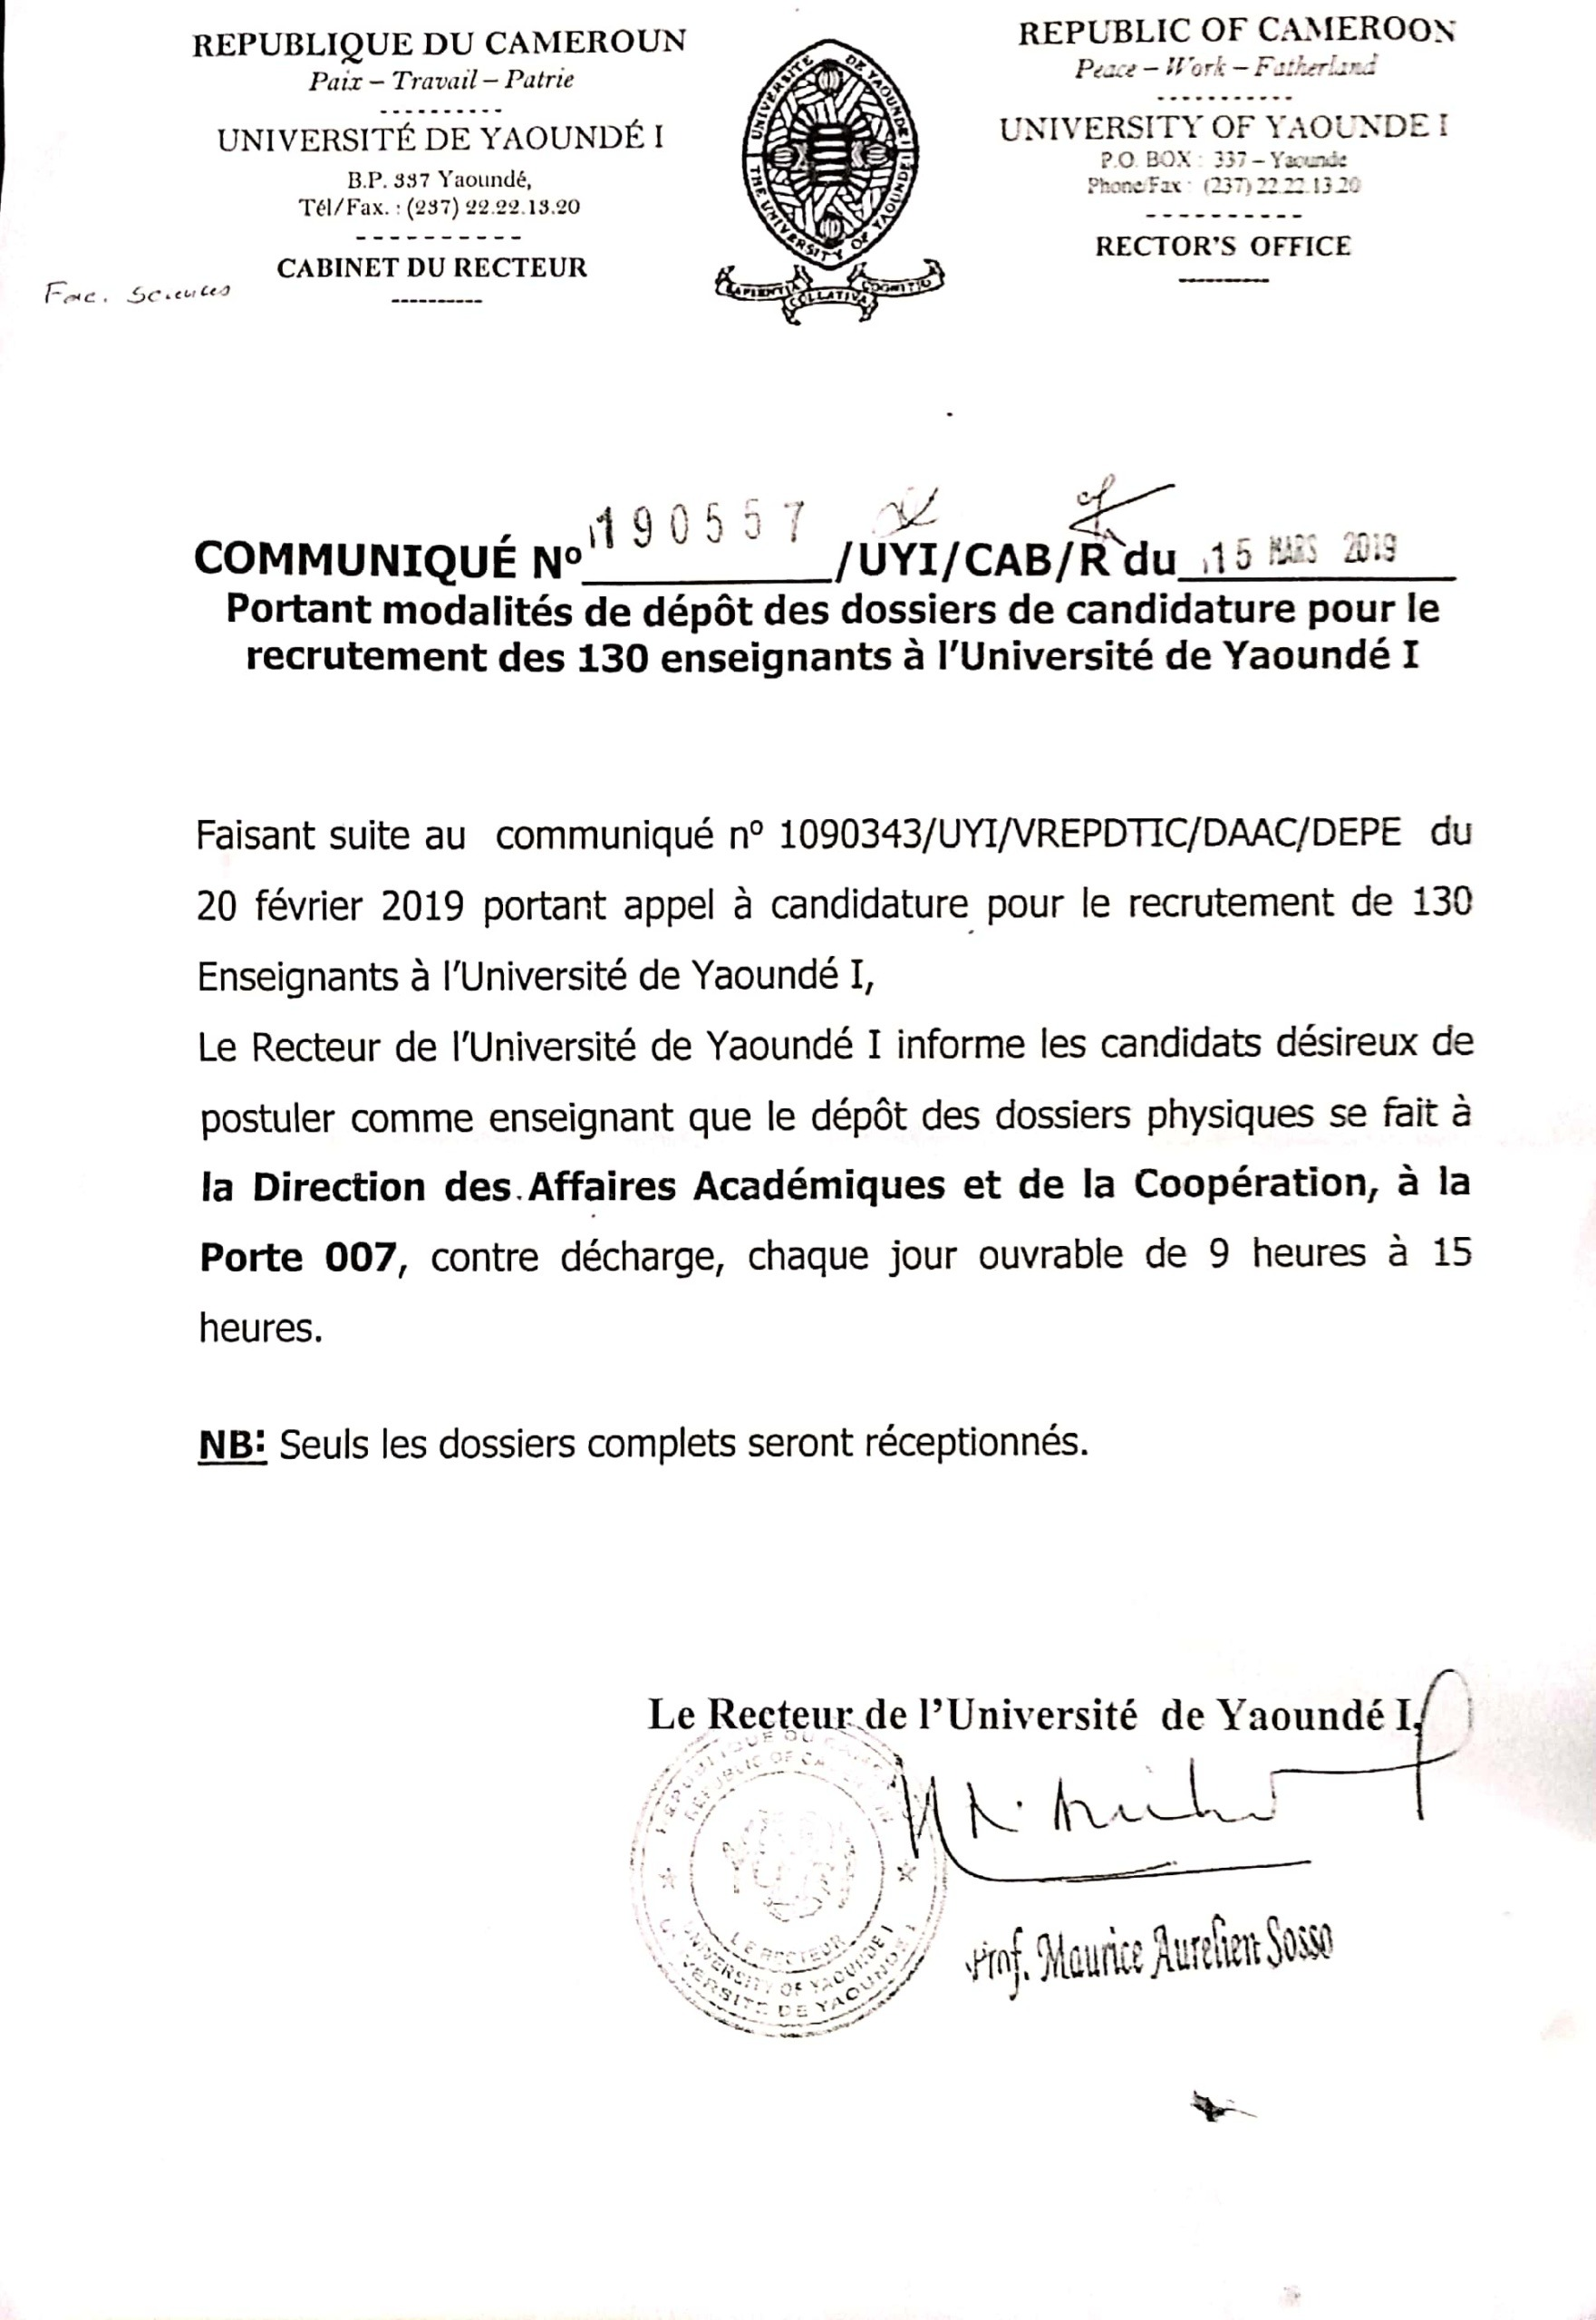 Press release concerning the filing modality of applications for the recruitment of 130 teachers at the University of Yaoundé I